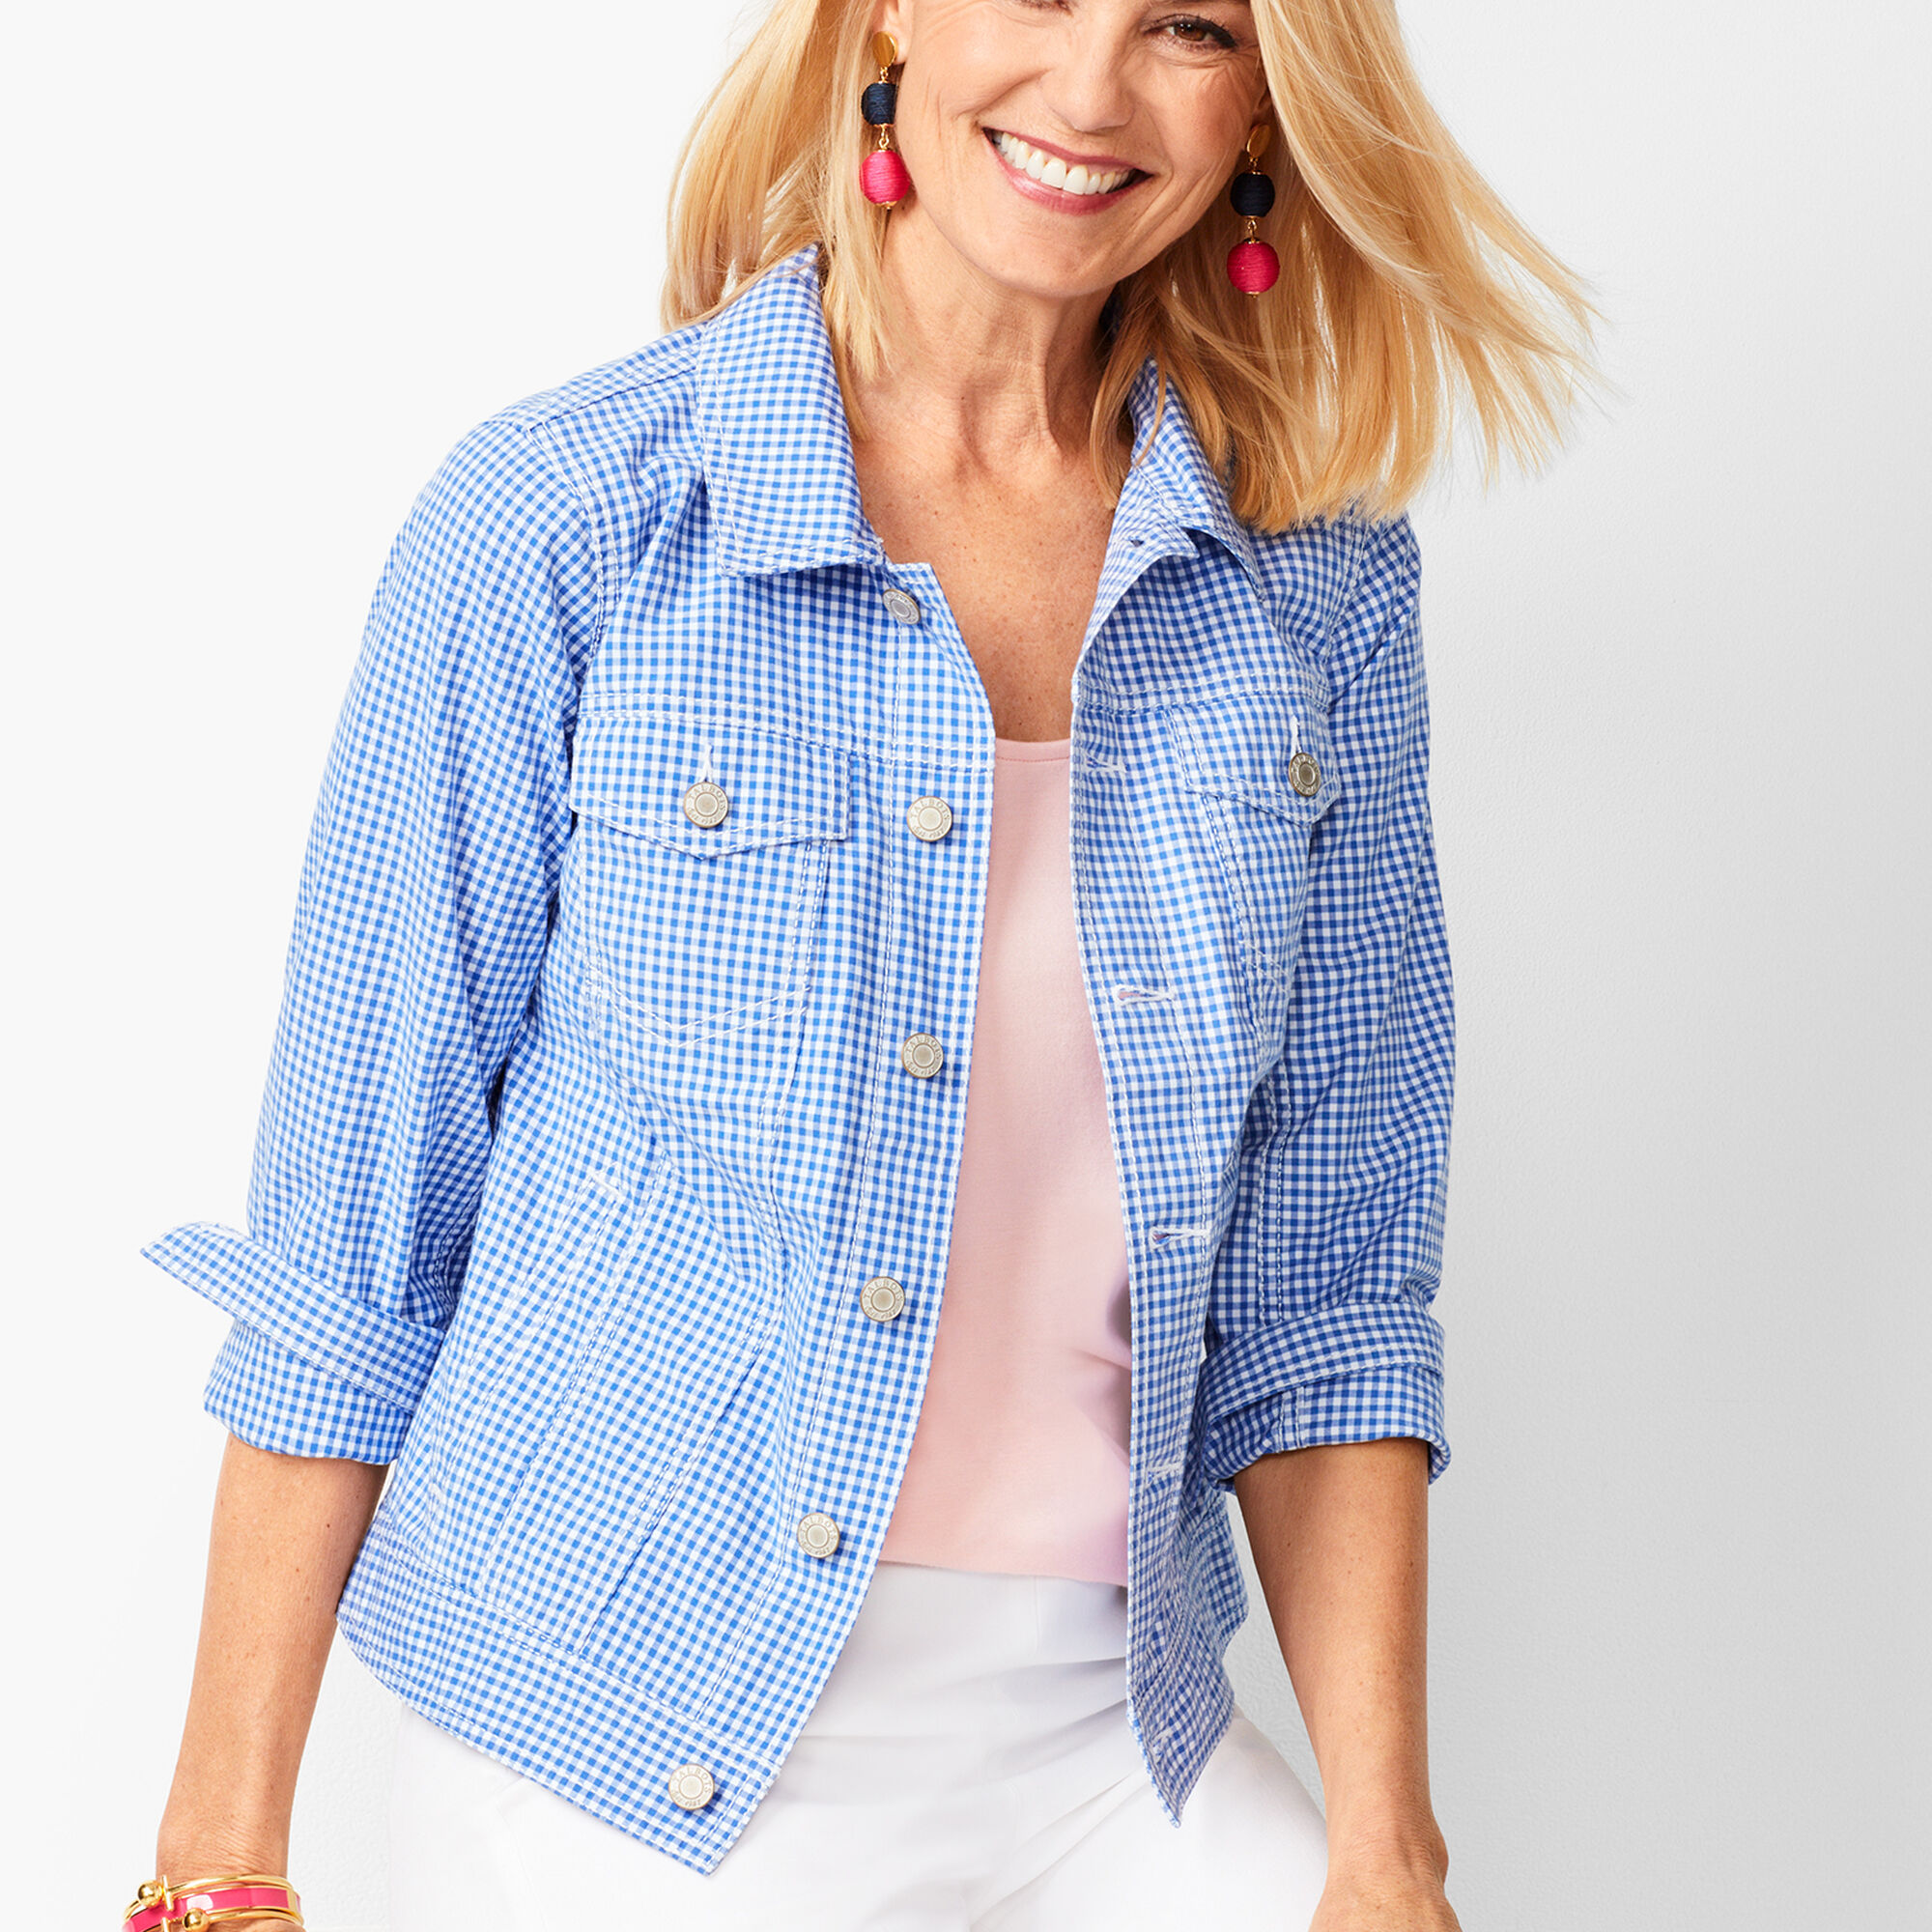 a52adbc5dce Classic Jean Jacket - Gingham Opens a New Window.